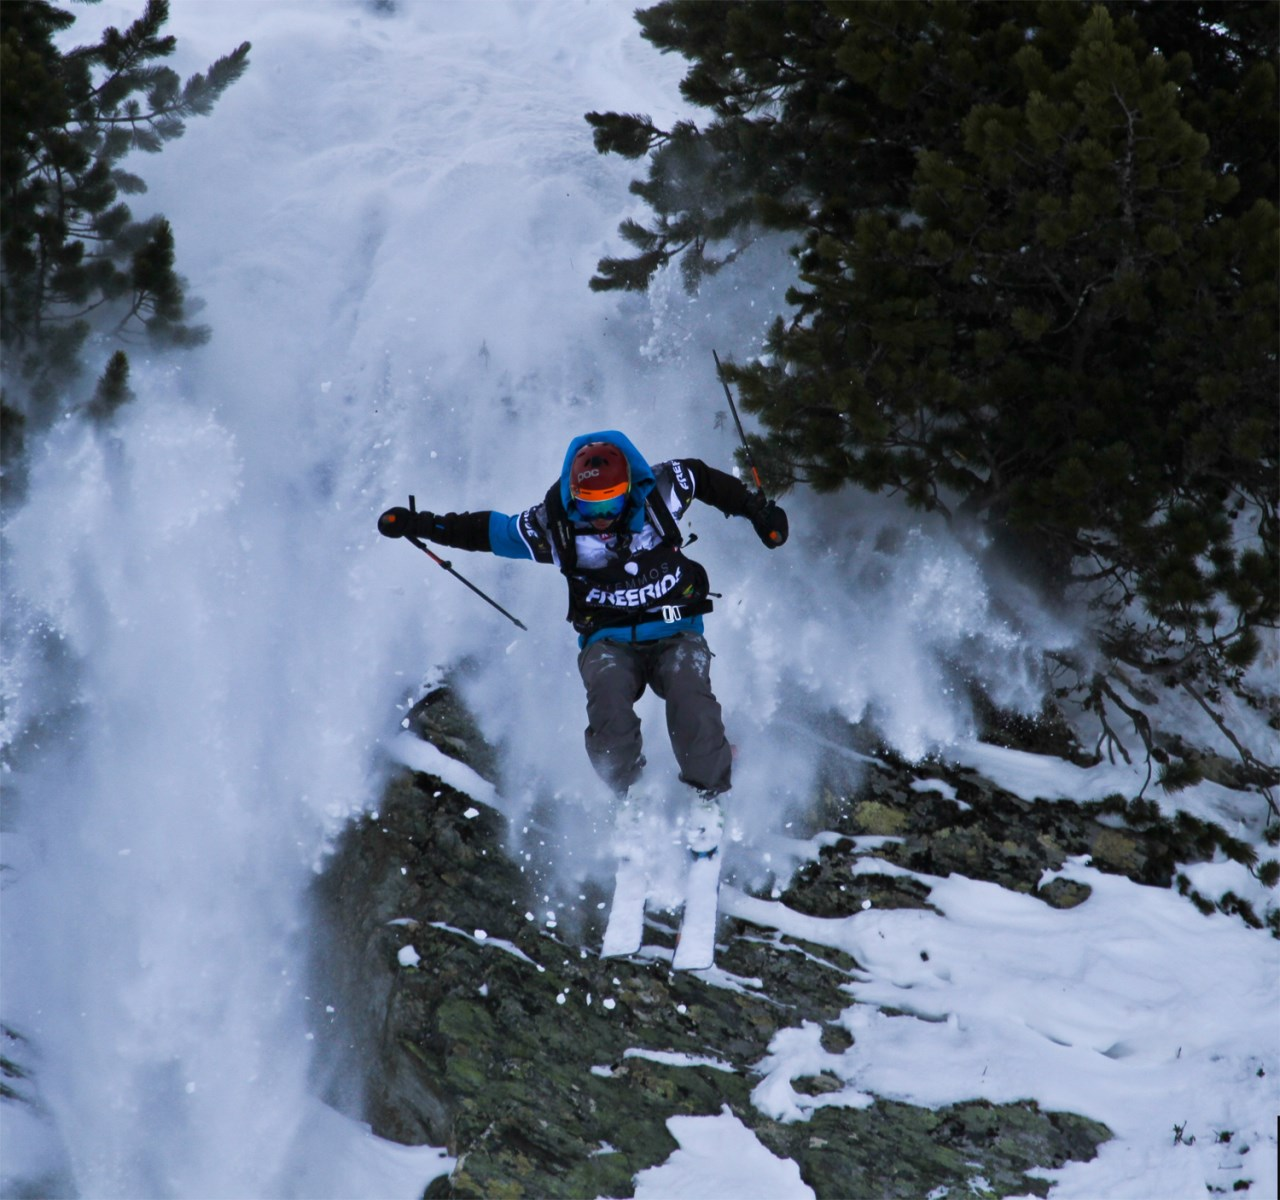 Freeride Week - Freeride World Qualifier in Arc 1950